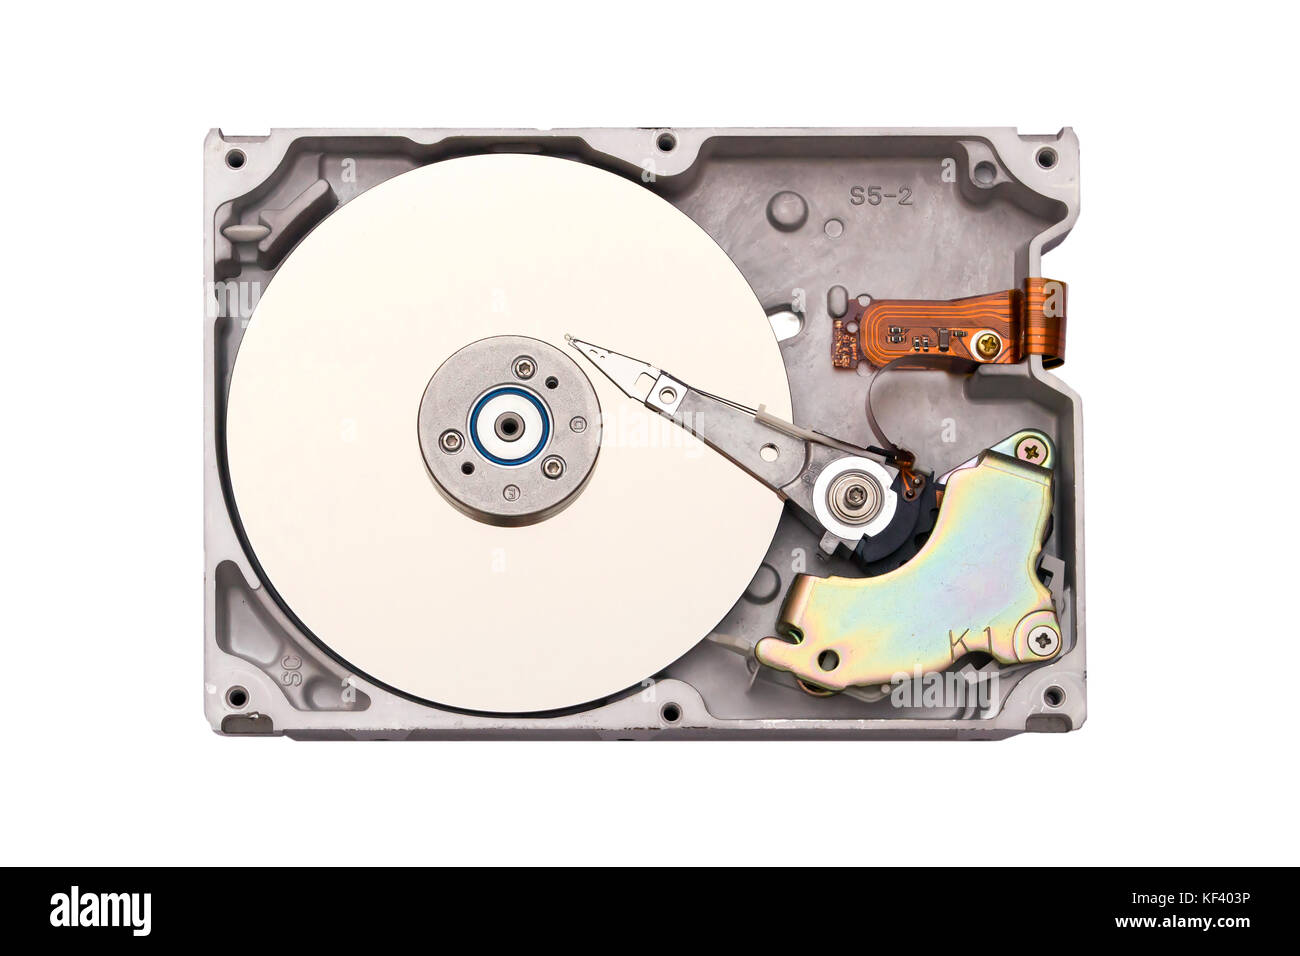 Hdd isolated on white background. Computer chips. Inside of internal Harddrive - Stock Image